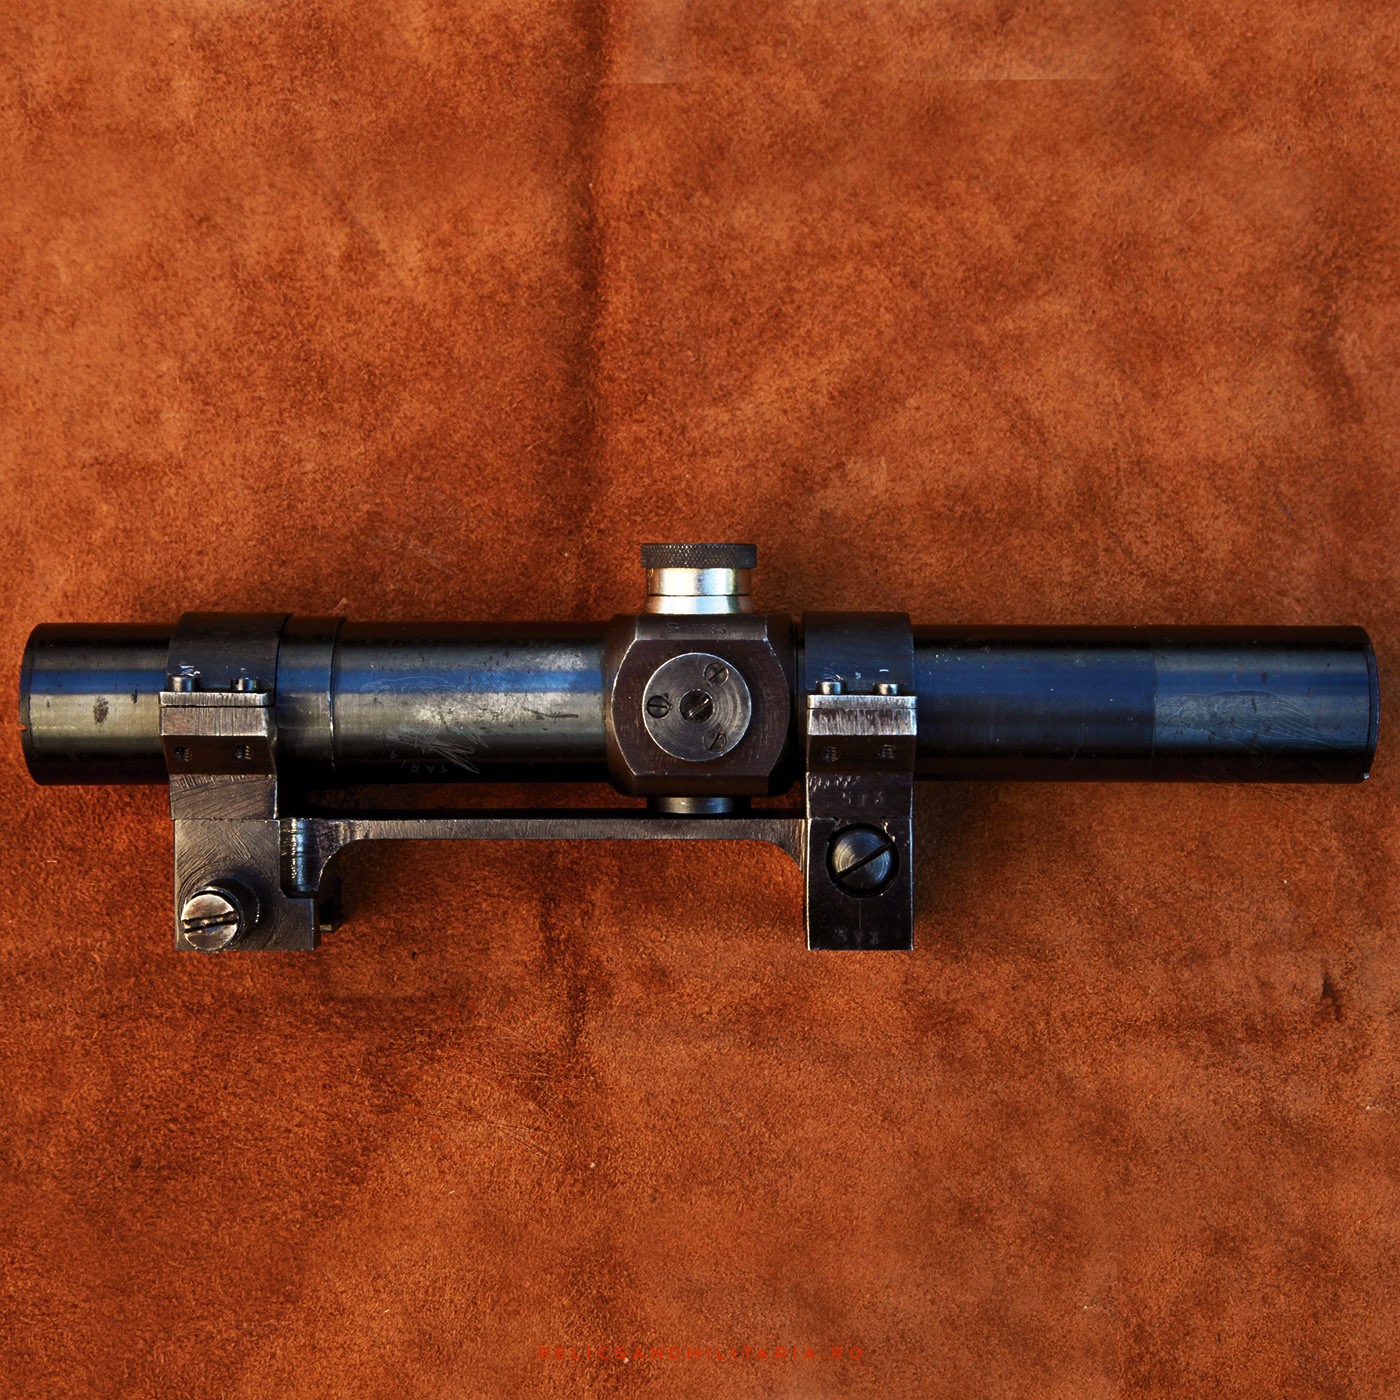 Romanian IOR Sniper scope for VZ.24 Rifle with original mounts and box